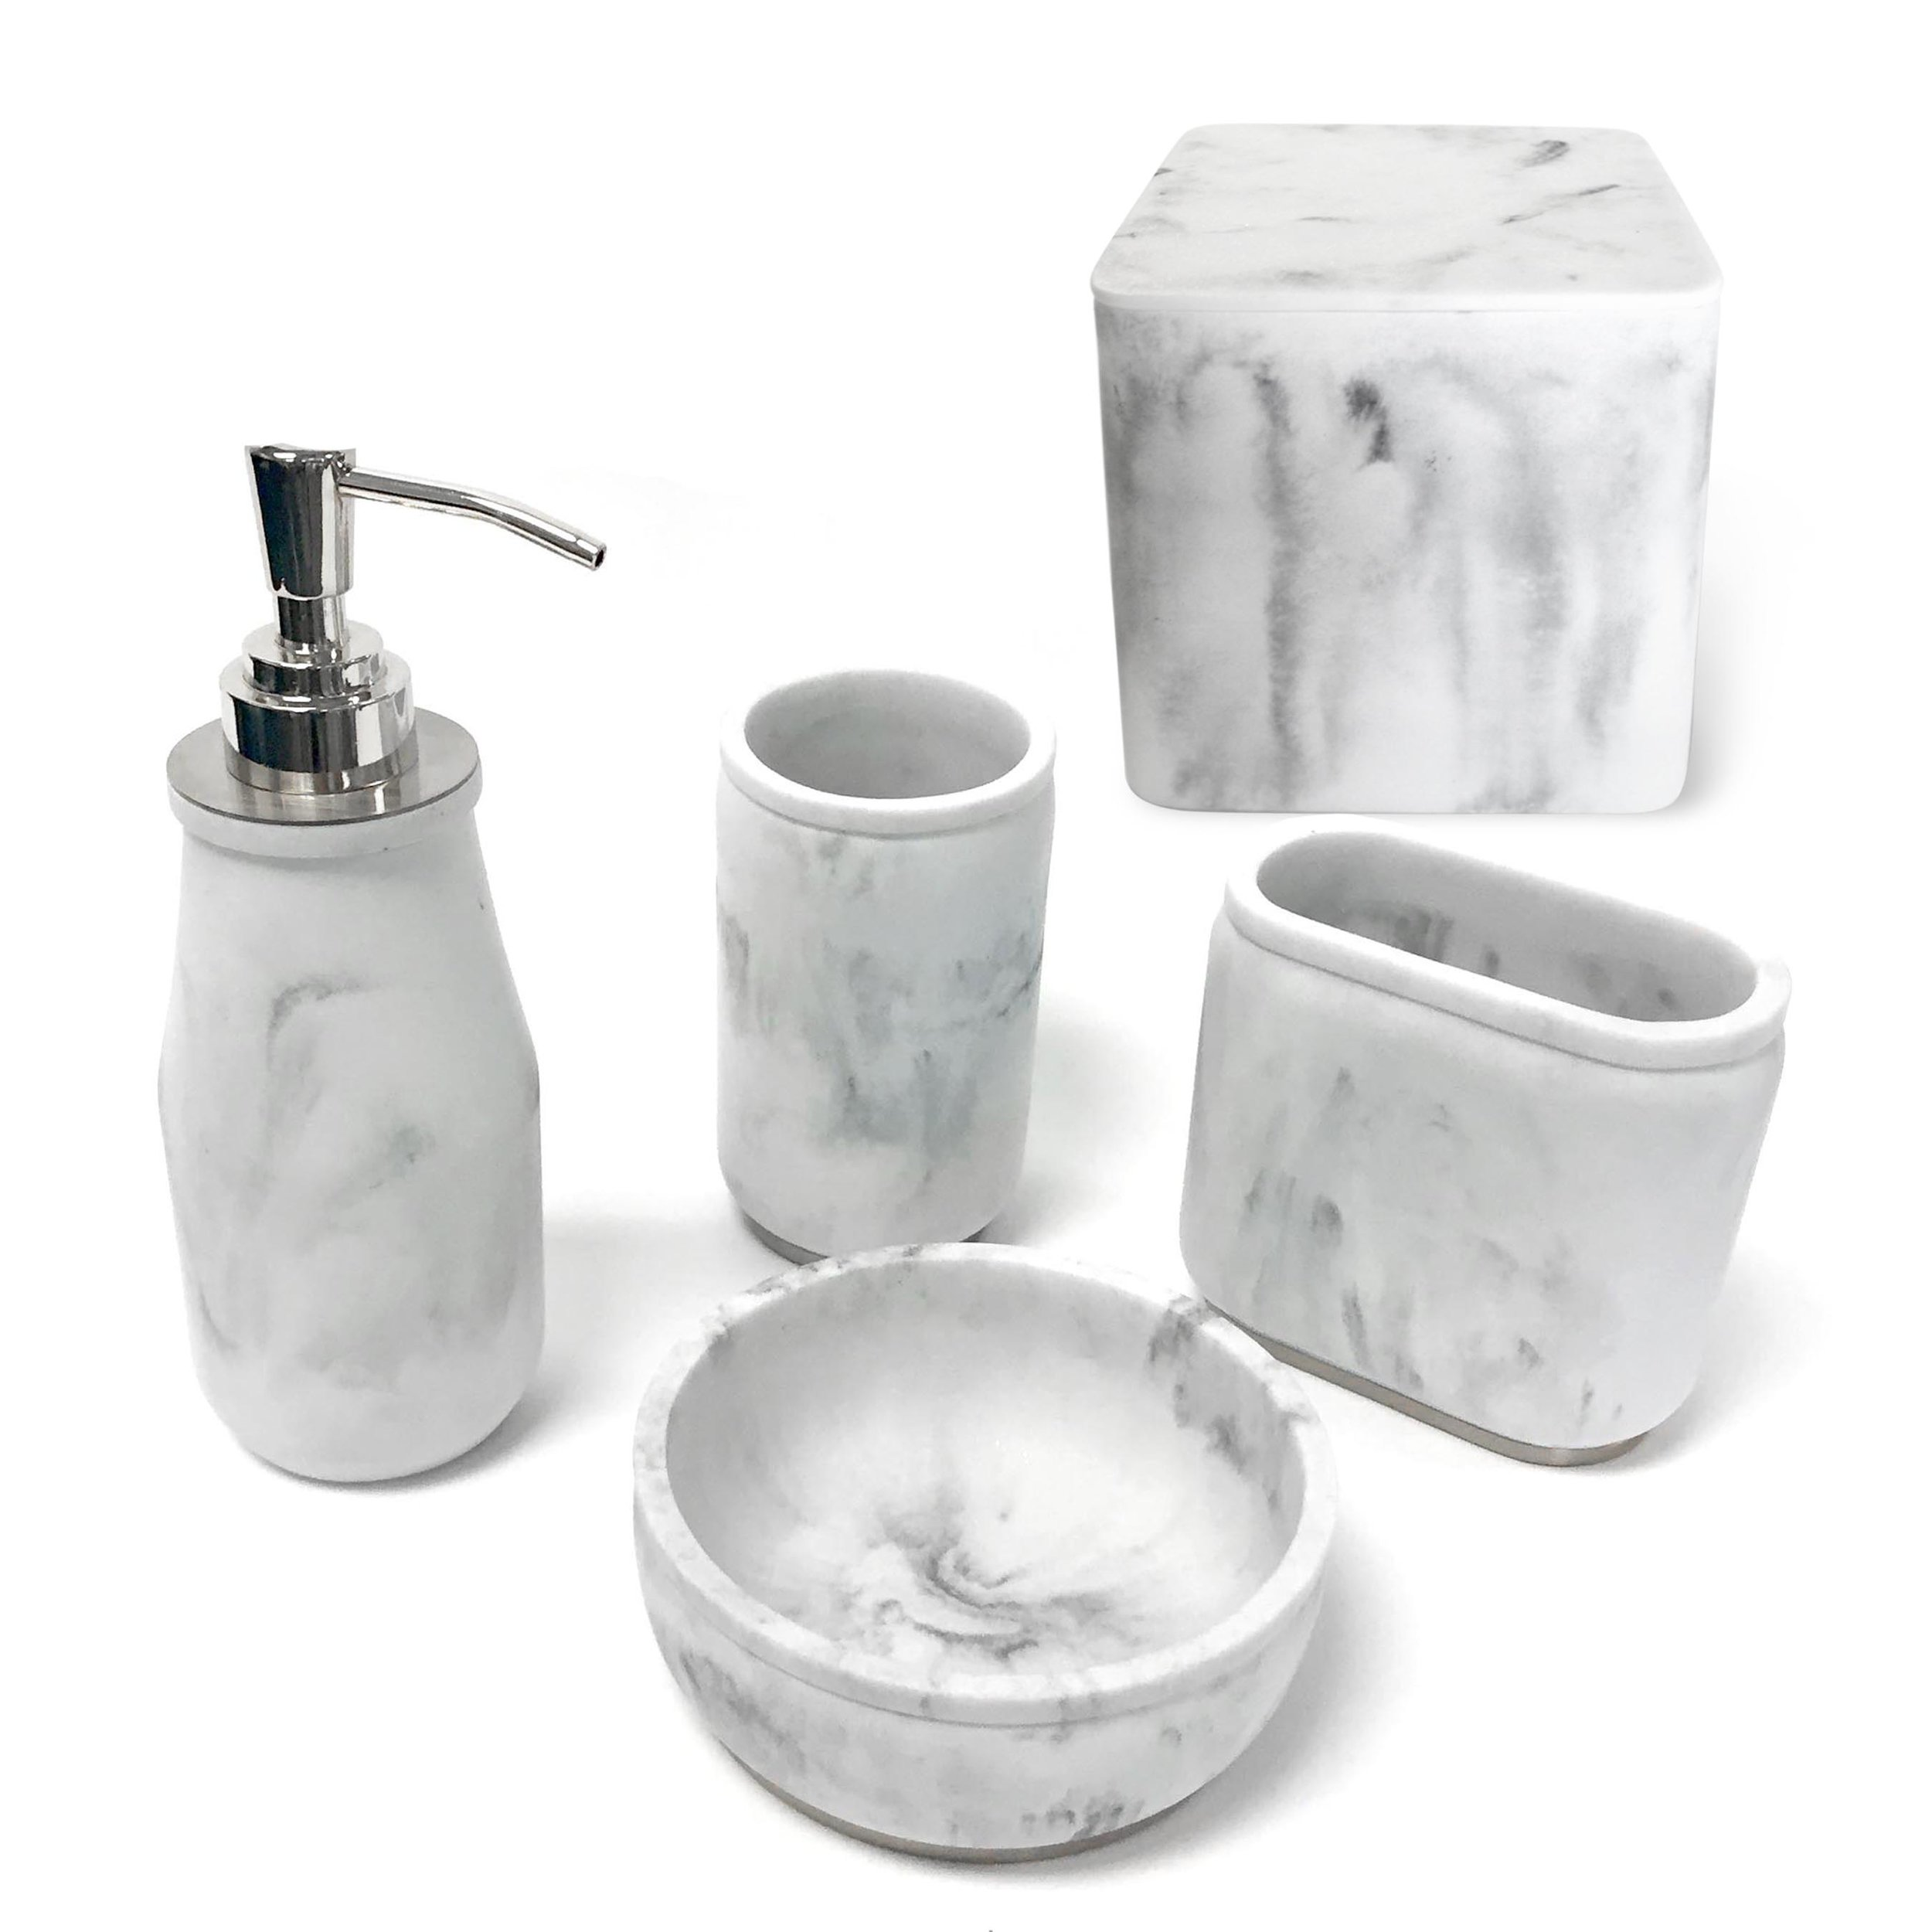 Marble resin accessory set